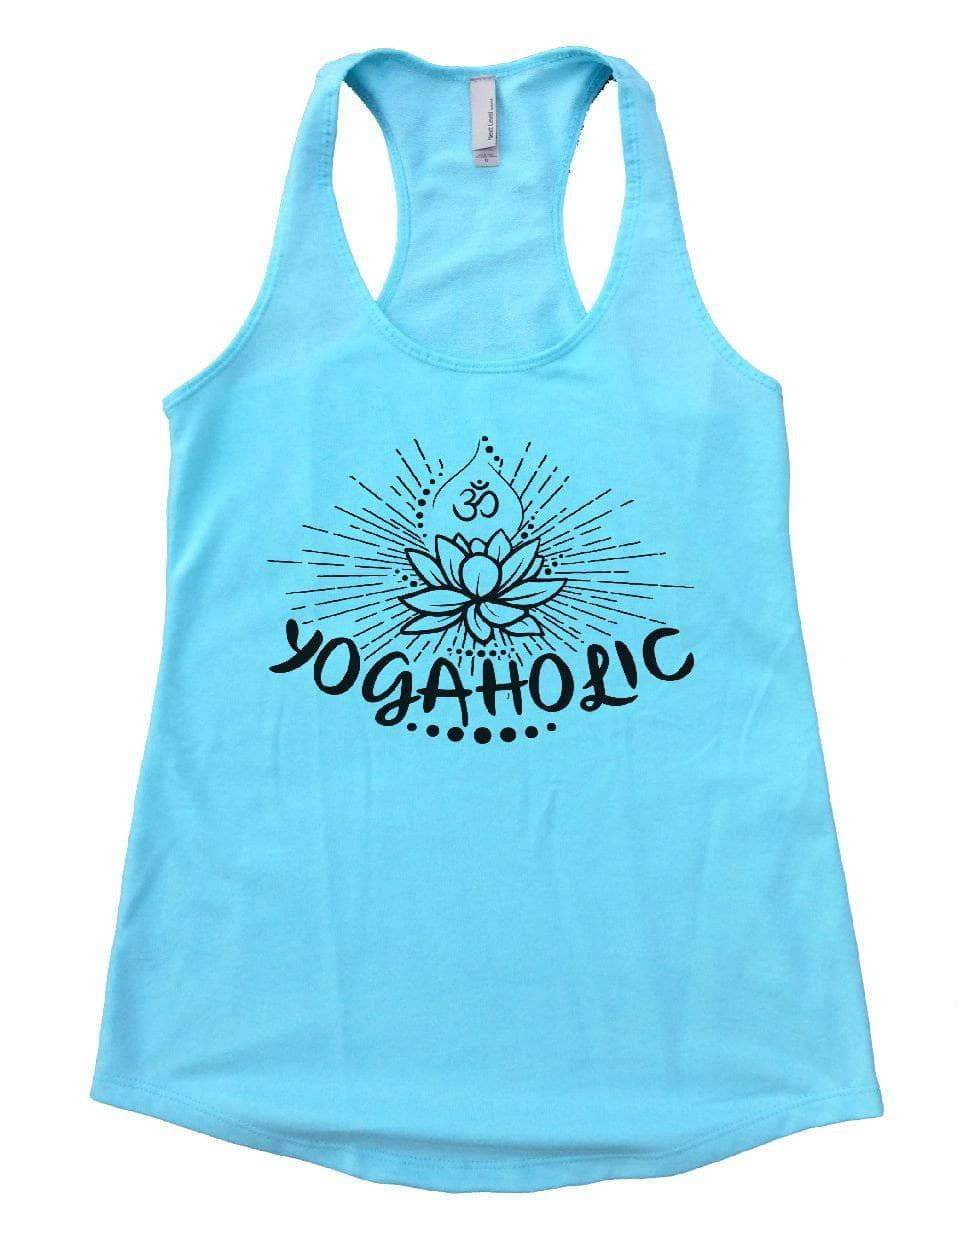 YOGAHOLIC Womens Workout Tank Top Small Womens Tank Tops Cancun Blue